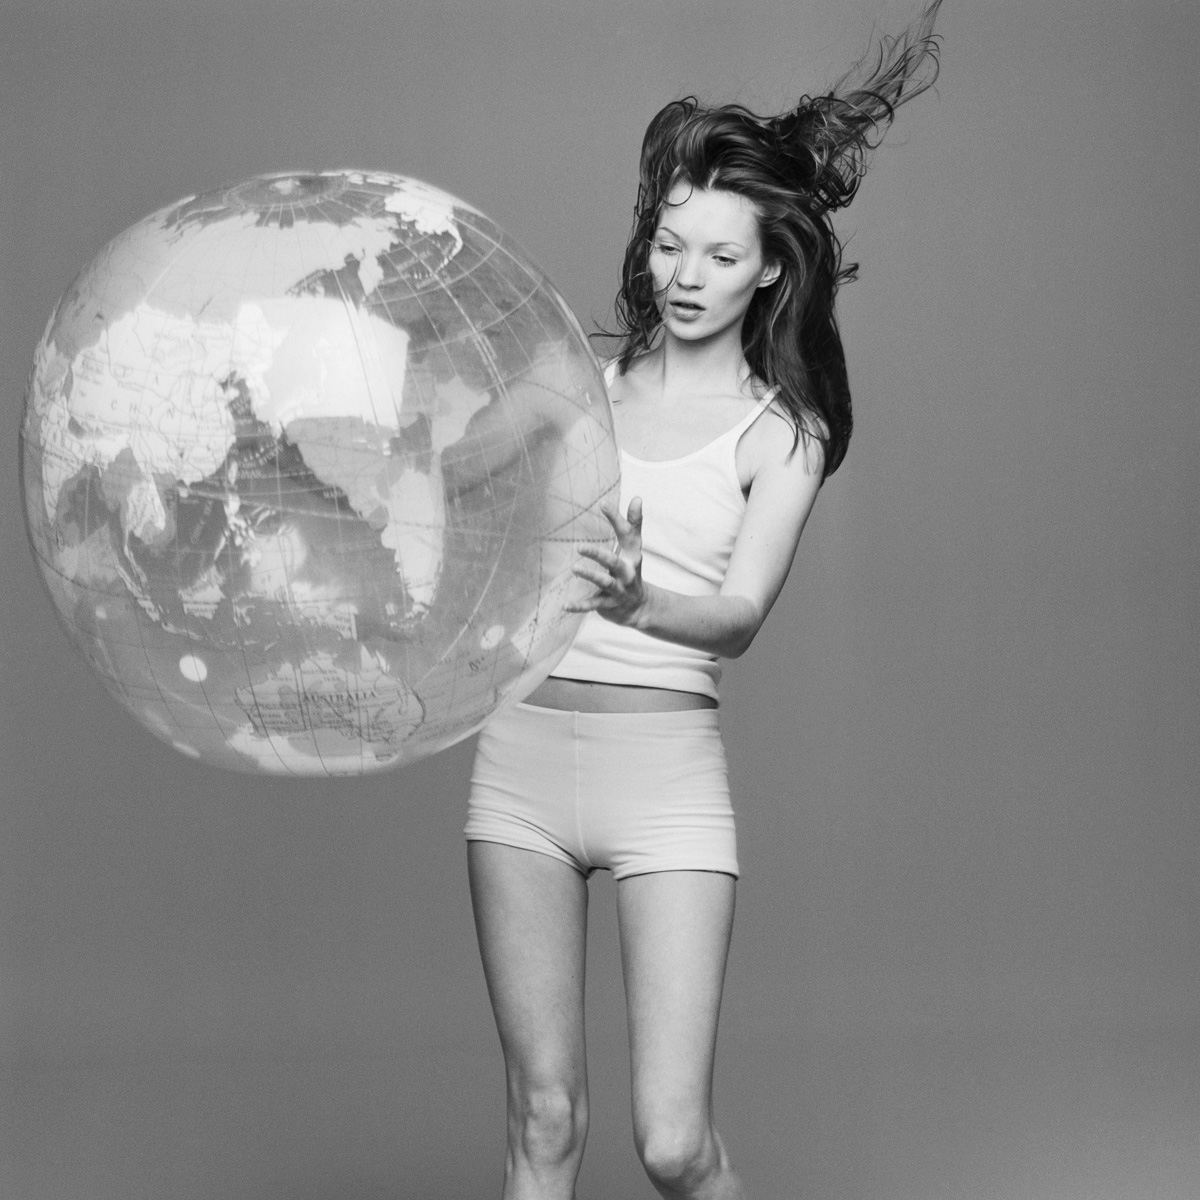 kate+moss+with+the+world+by+patrik+andersson-1.jpeg